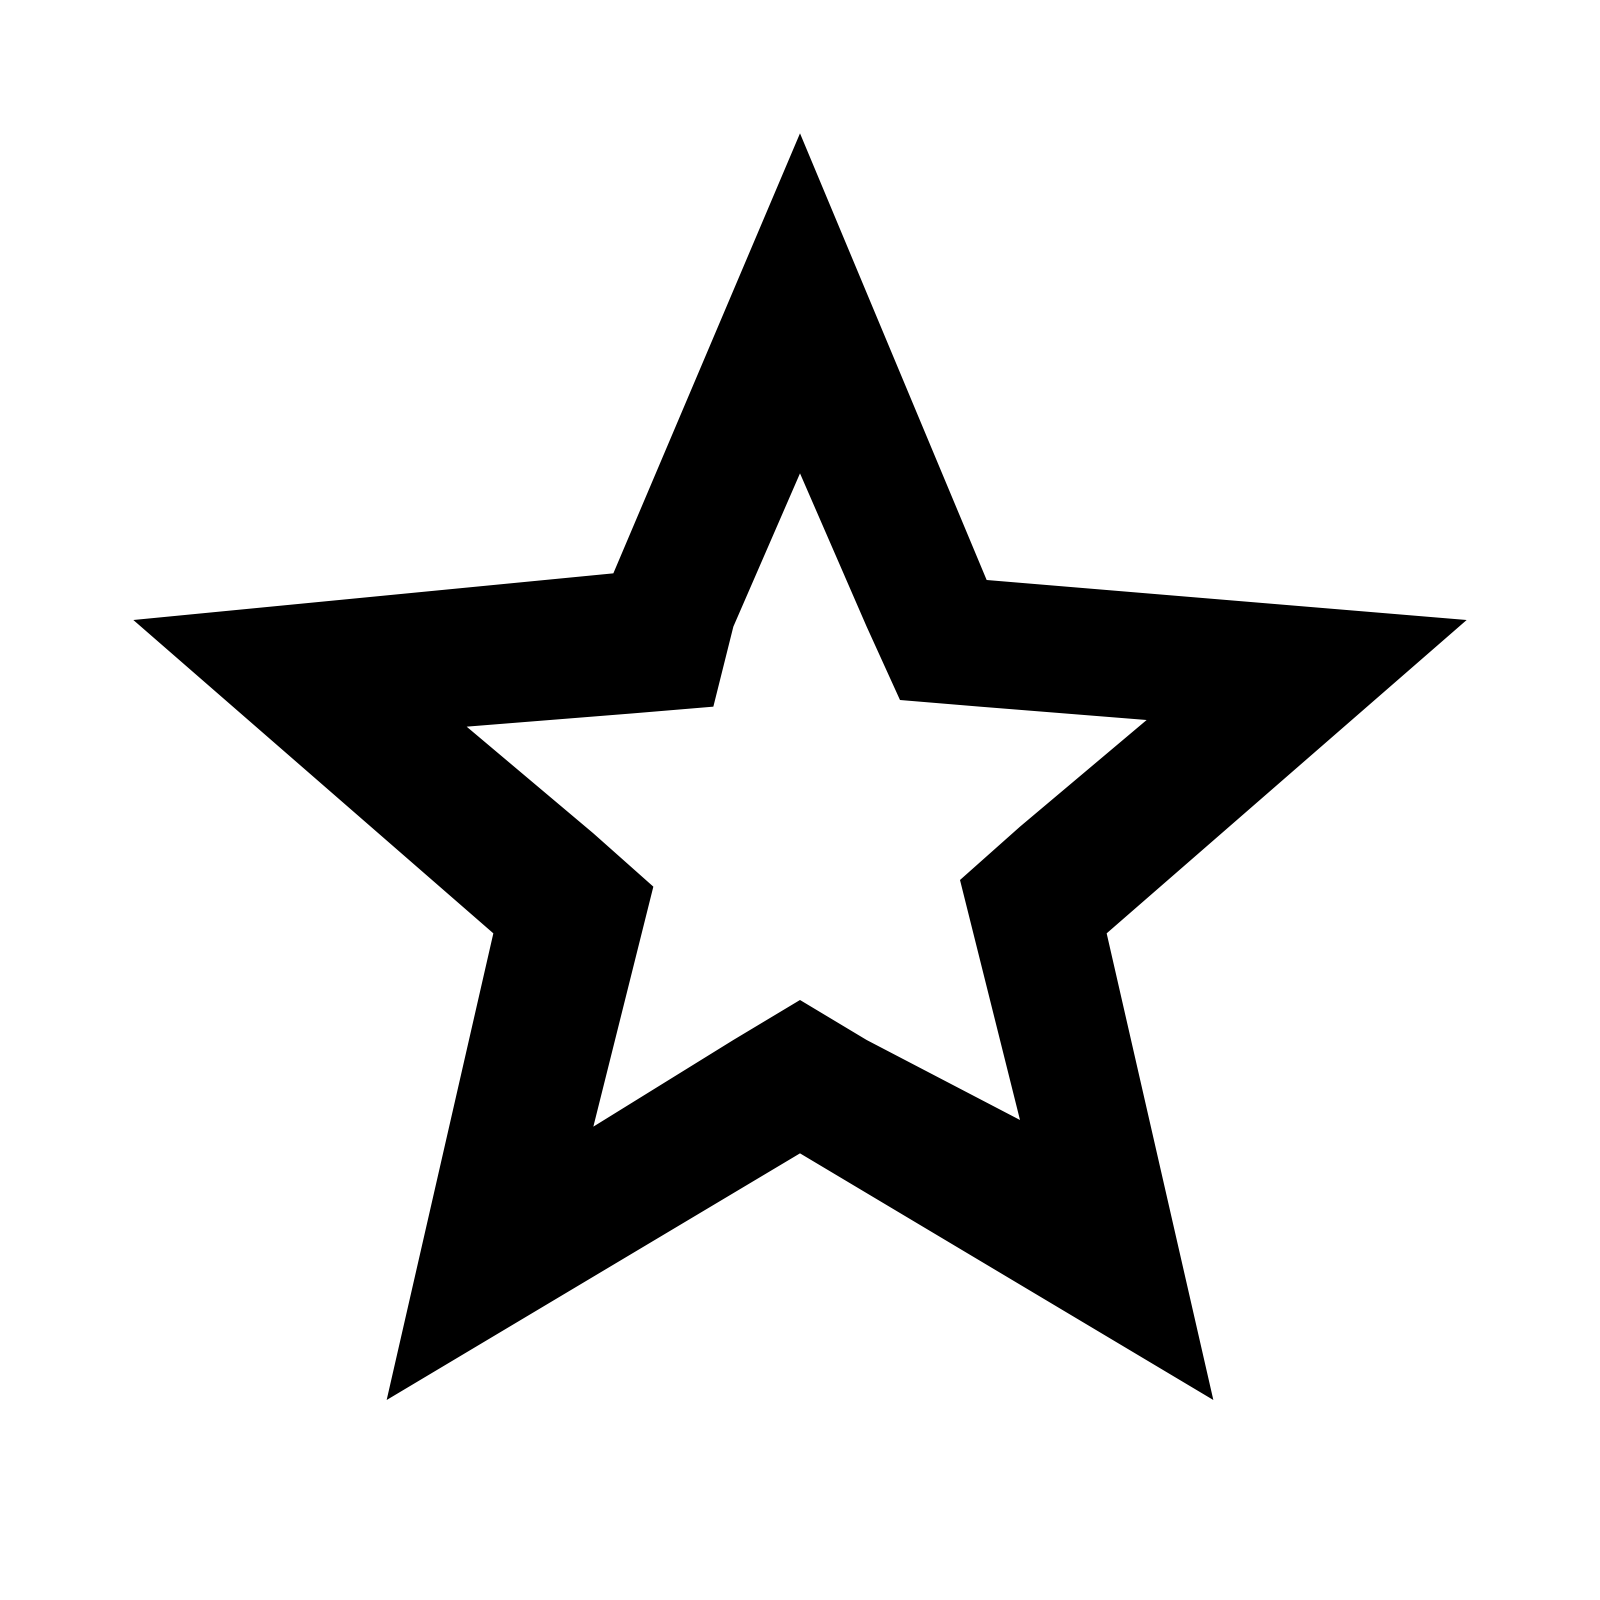 PNG Star Black And White - 60960